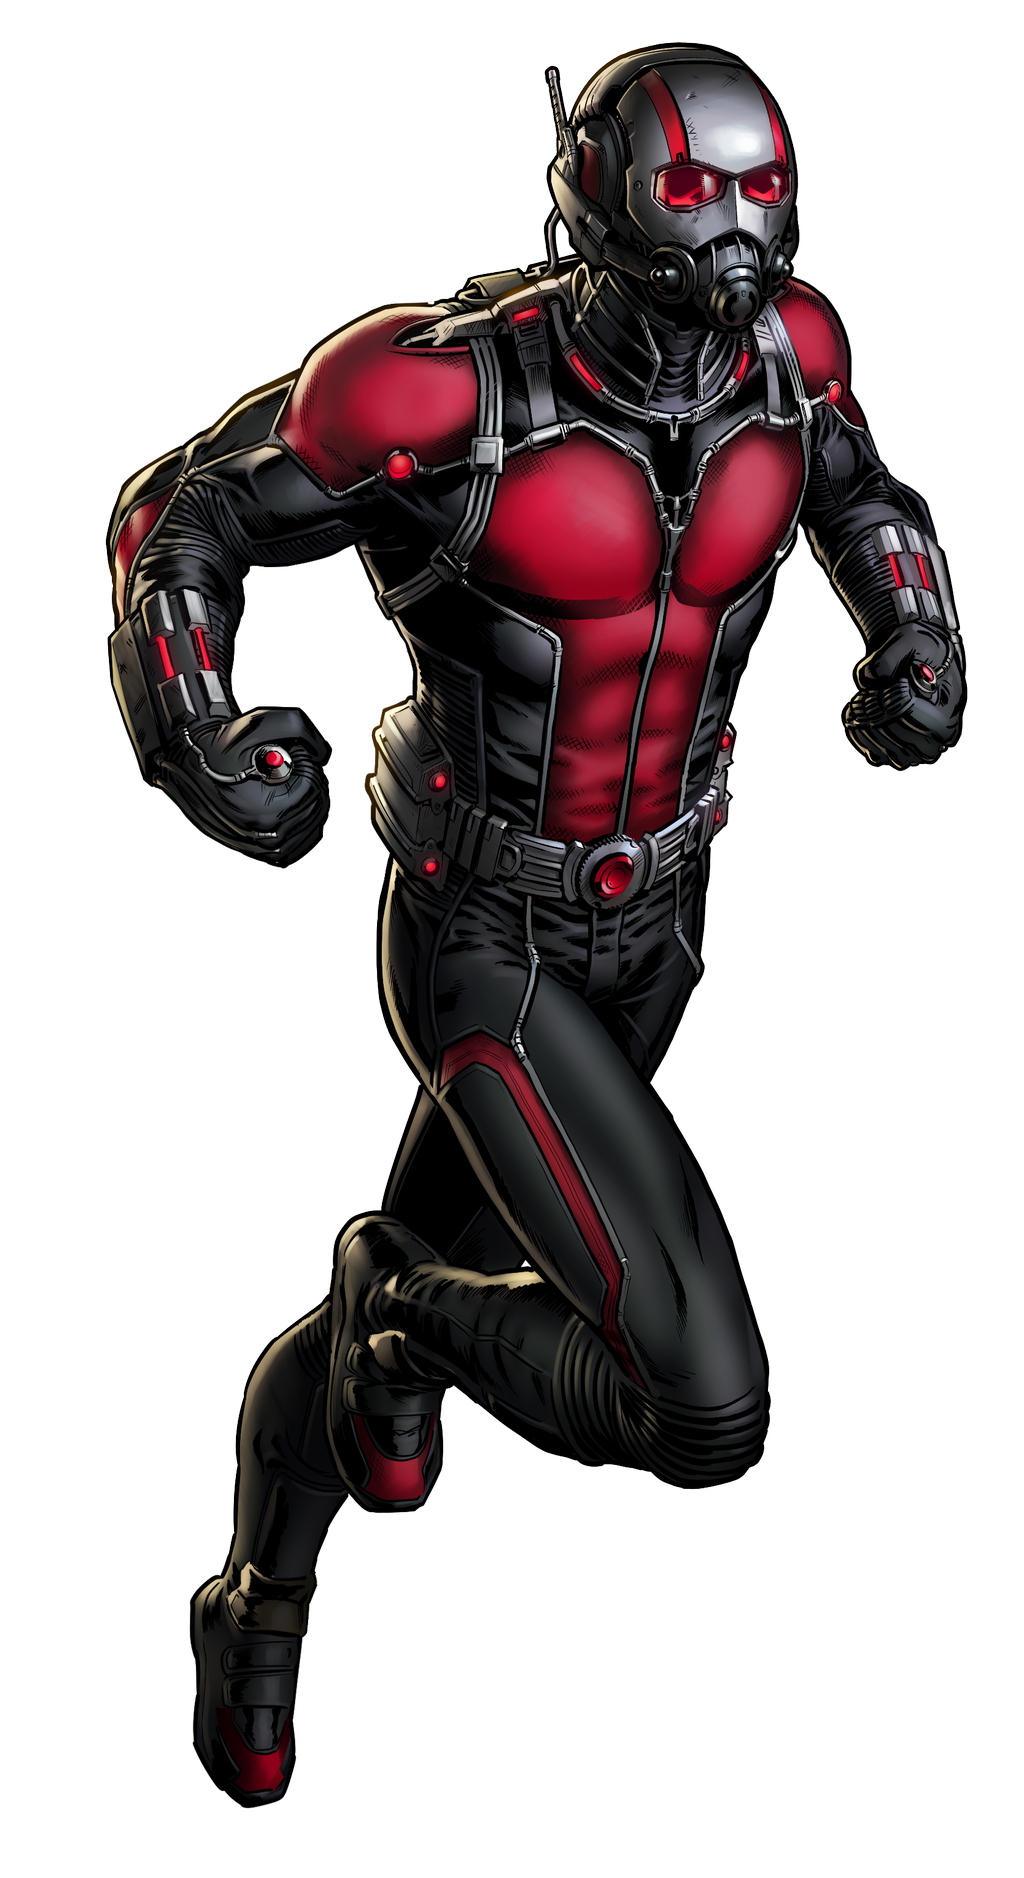 Ant-Man (Scott Lang) (Earth-1600).png - Antman HD PNG